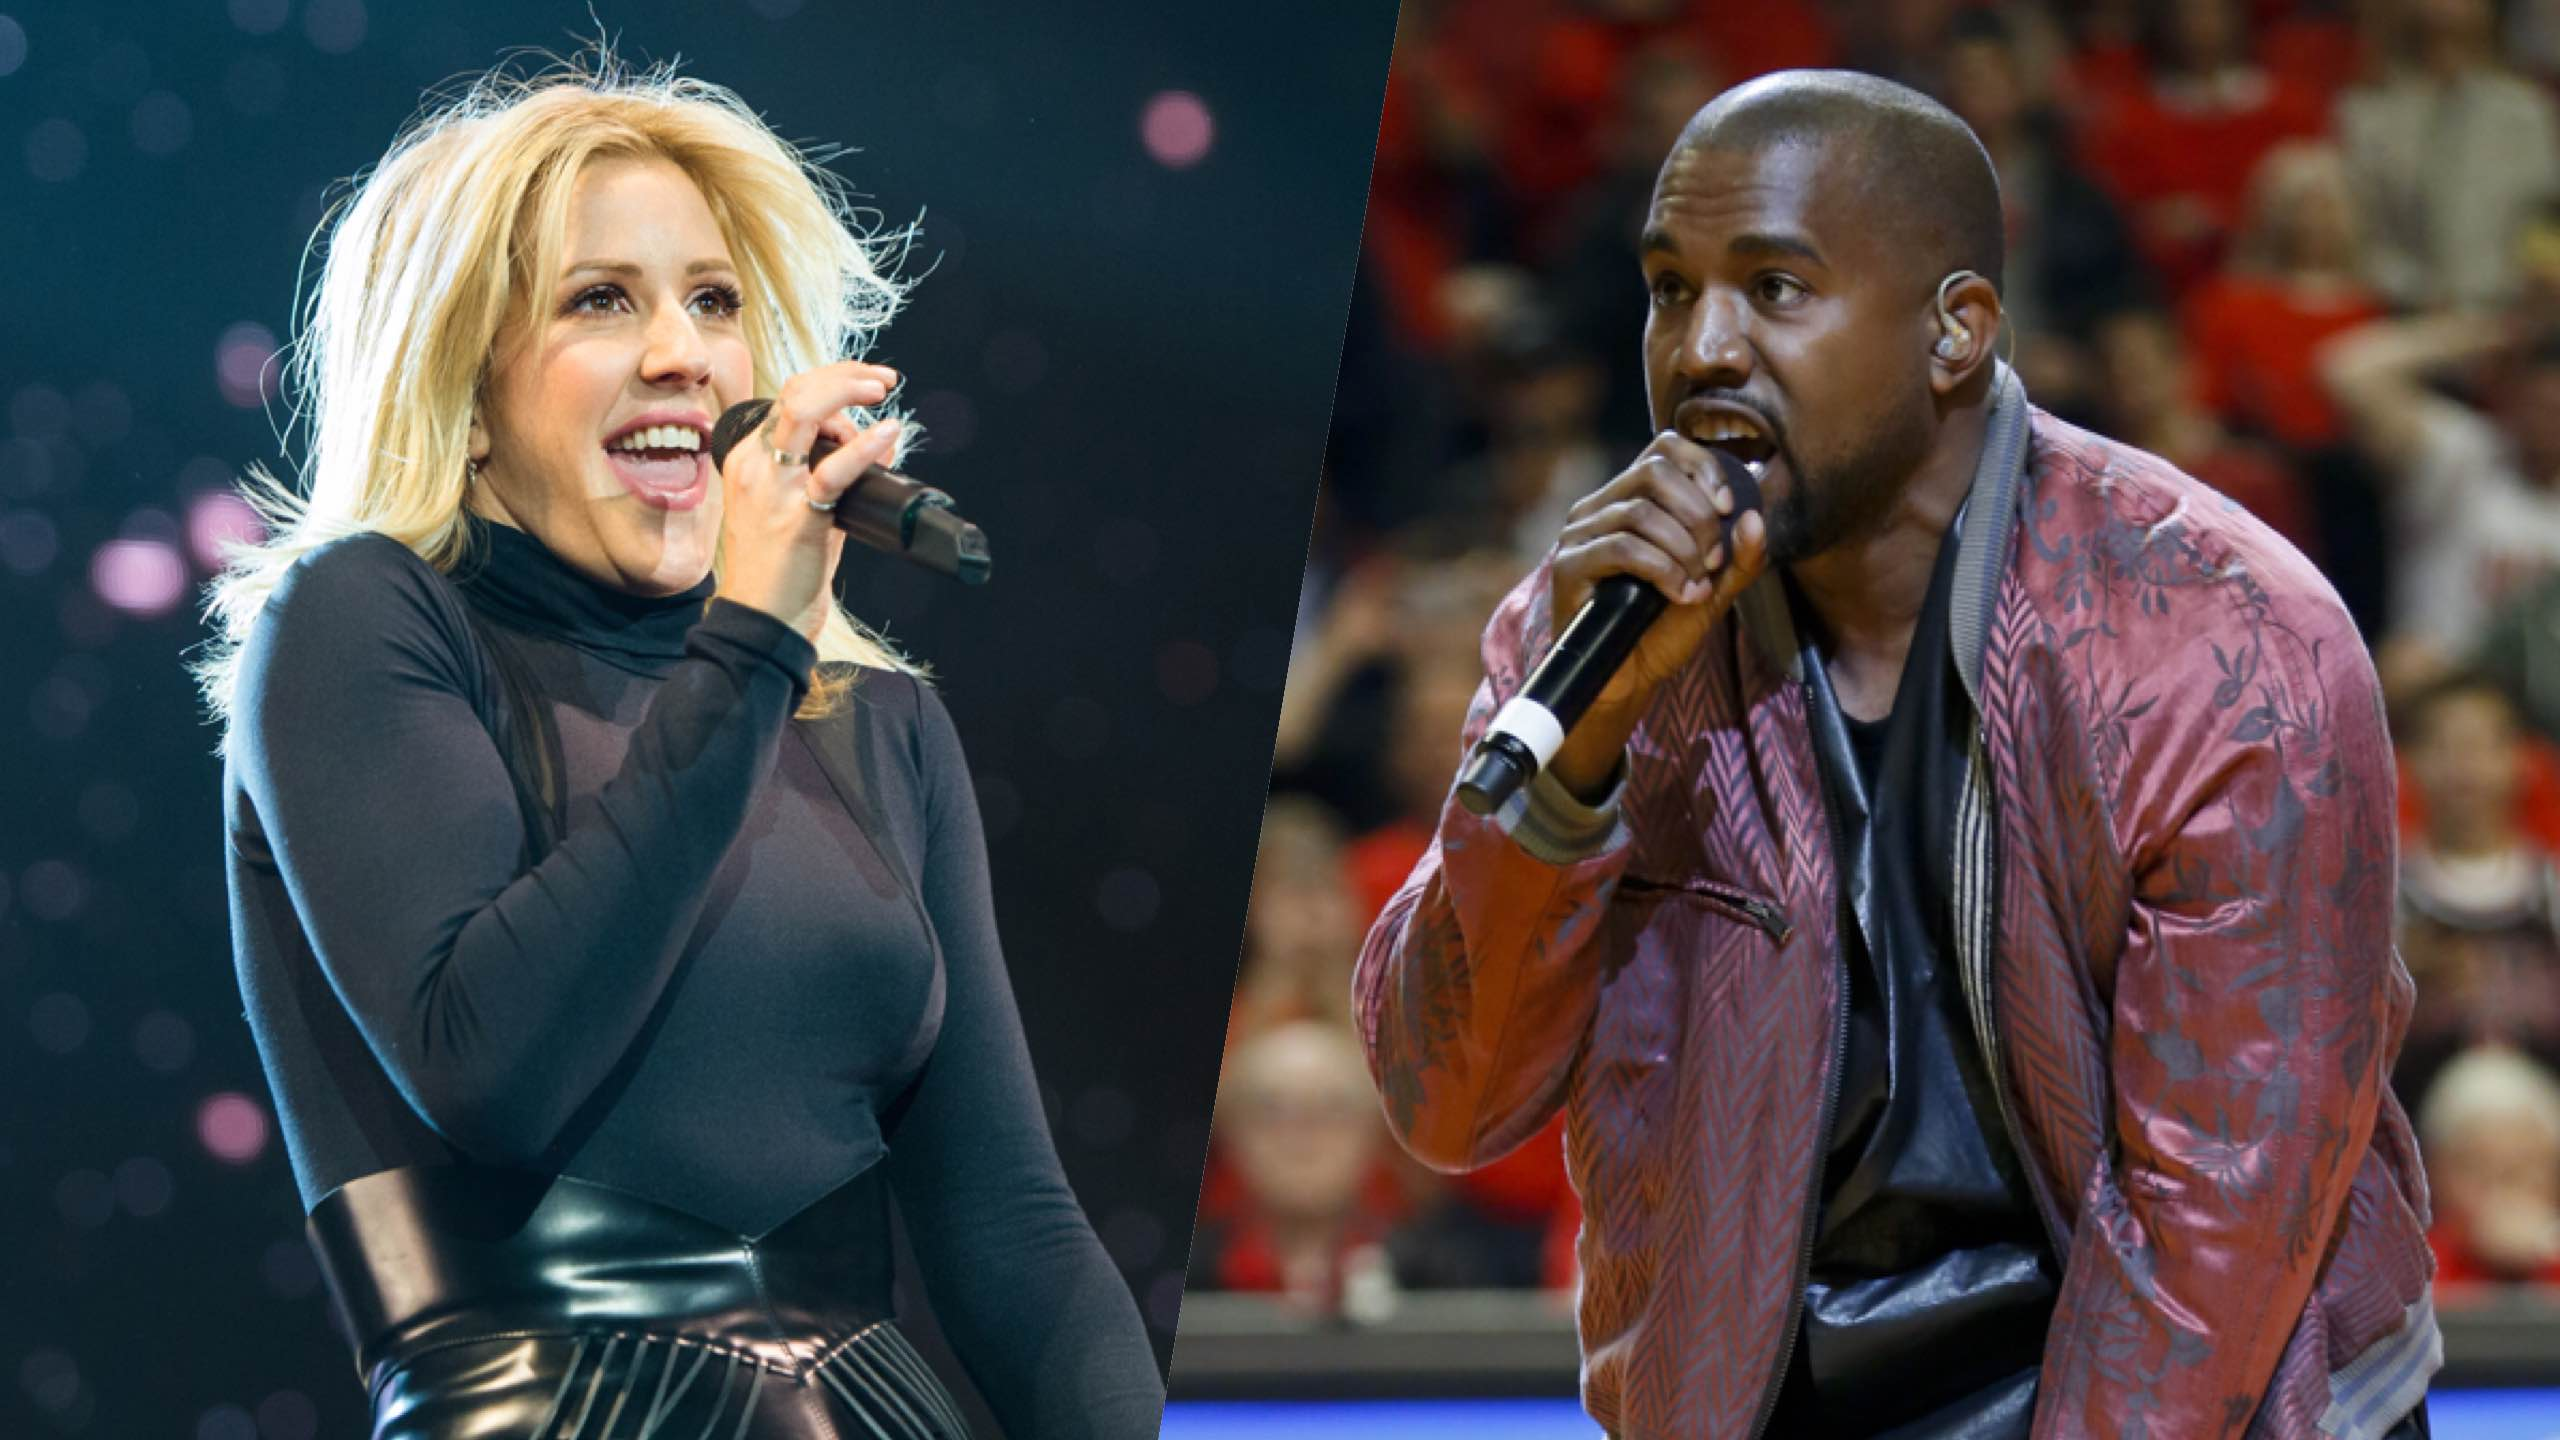 Kanye West Ellie Goulding To Use Fan Lyrics In Anti Poverty